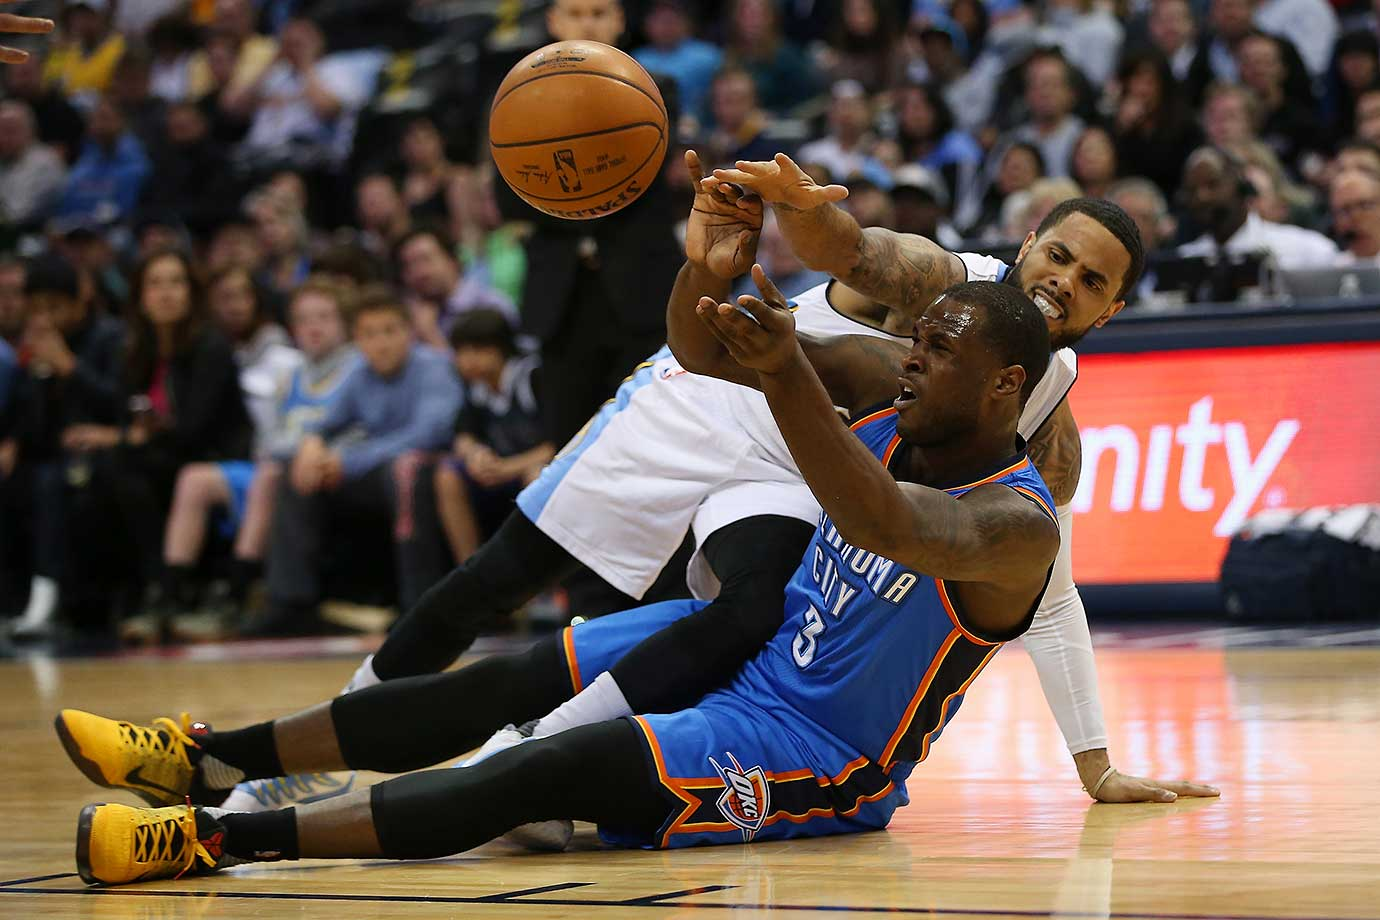 Dion Waiters of the Oklahoma City Thunder collects a loose ball against D.J. Augustin of the Denver Nuggets.